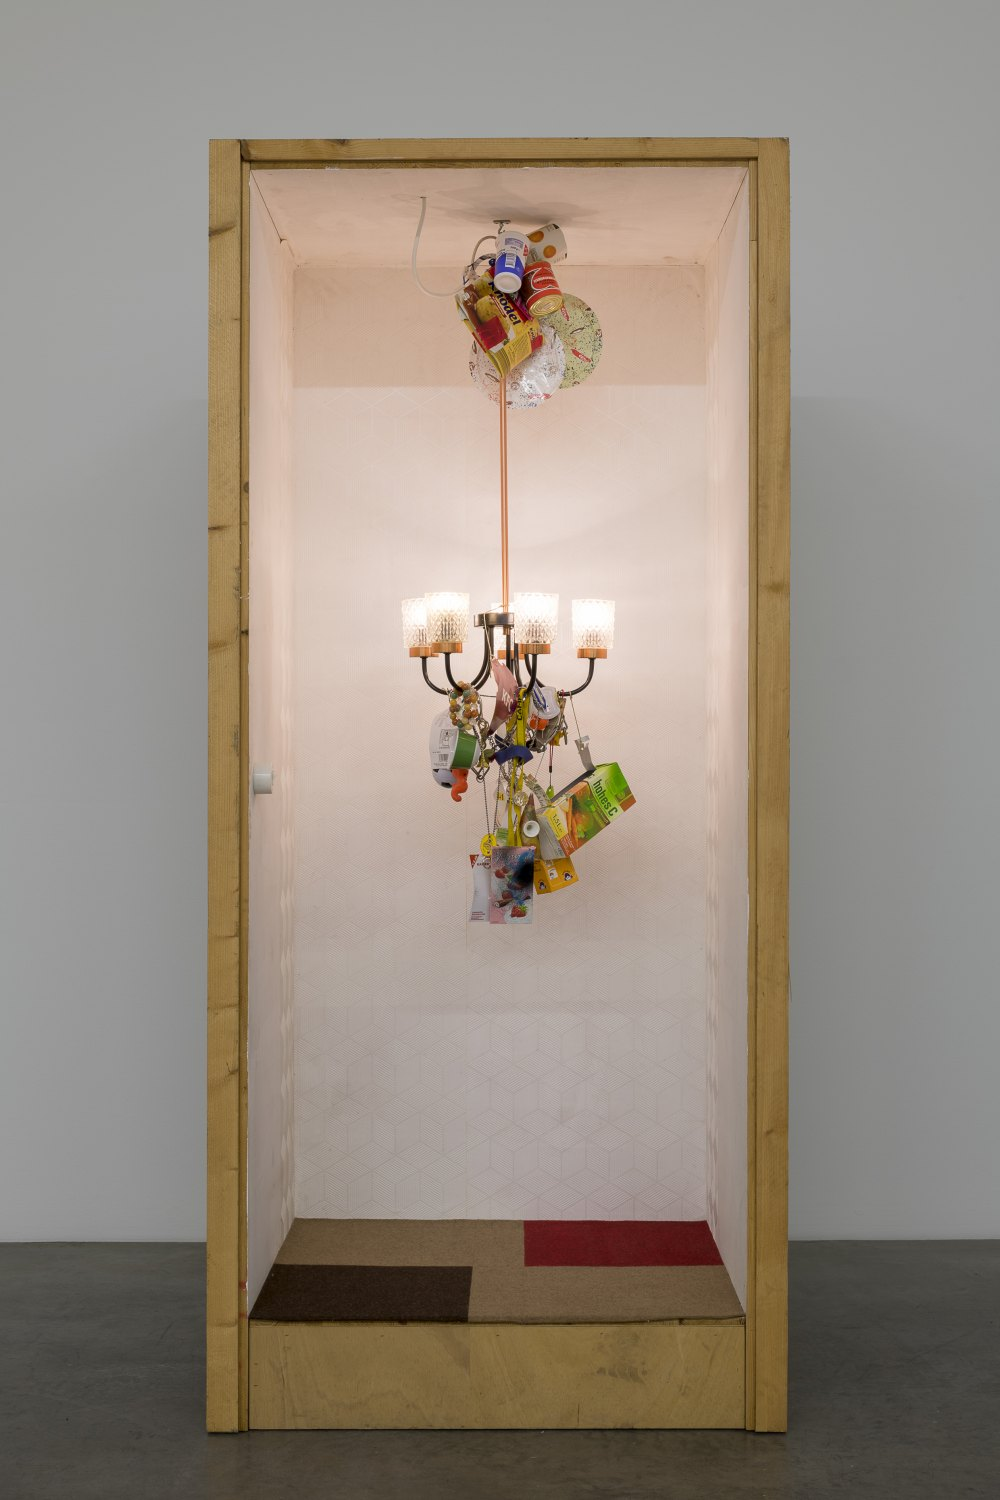 Manfred Pernice Bianca, 2010 wooden crate, carpet, wallpaper, lamp, electric chord, various found materials 234 x 105.5 x 85 cm